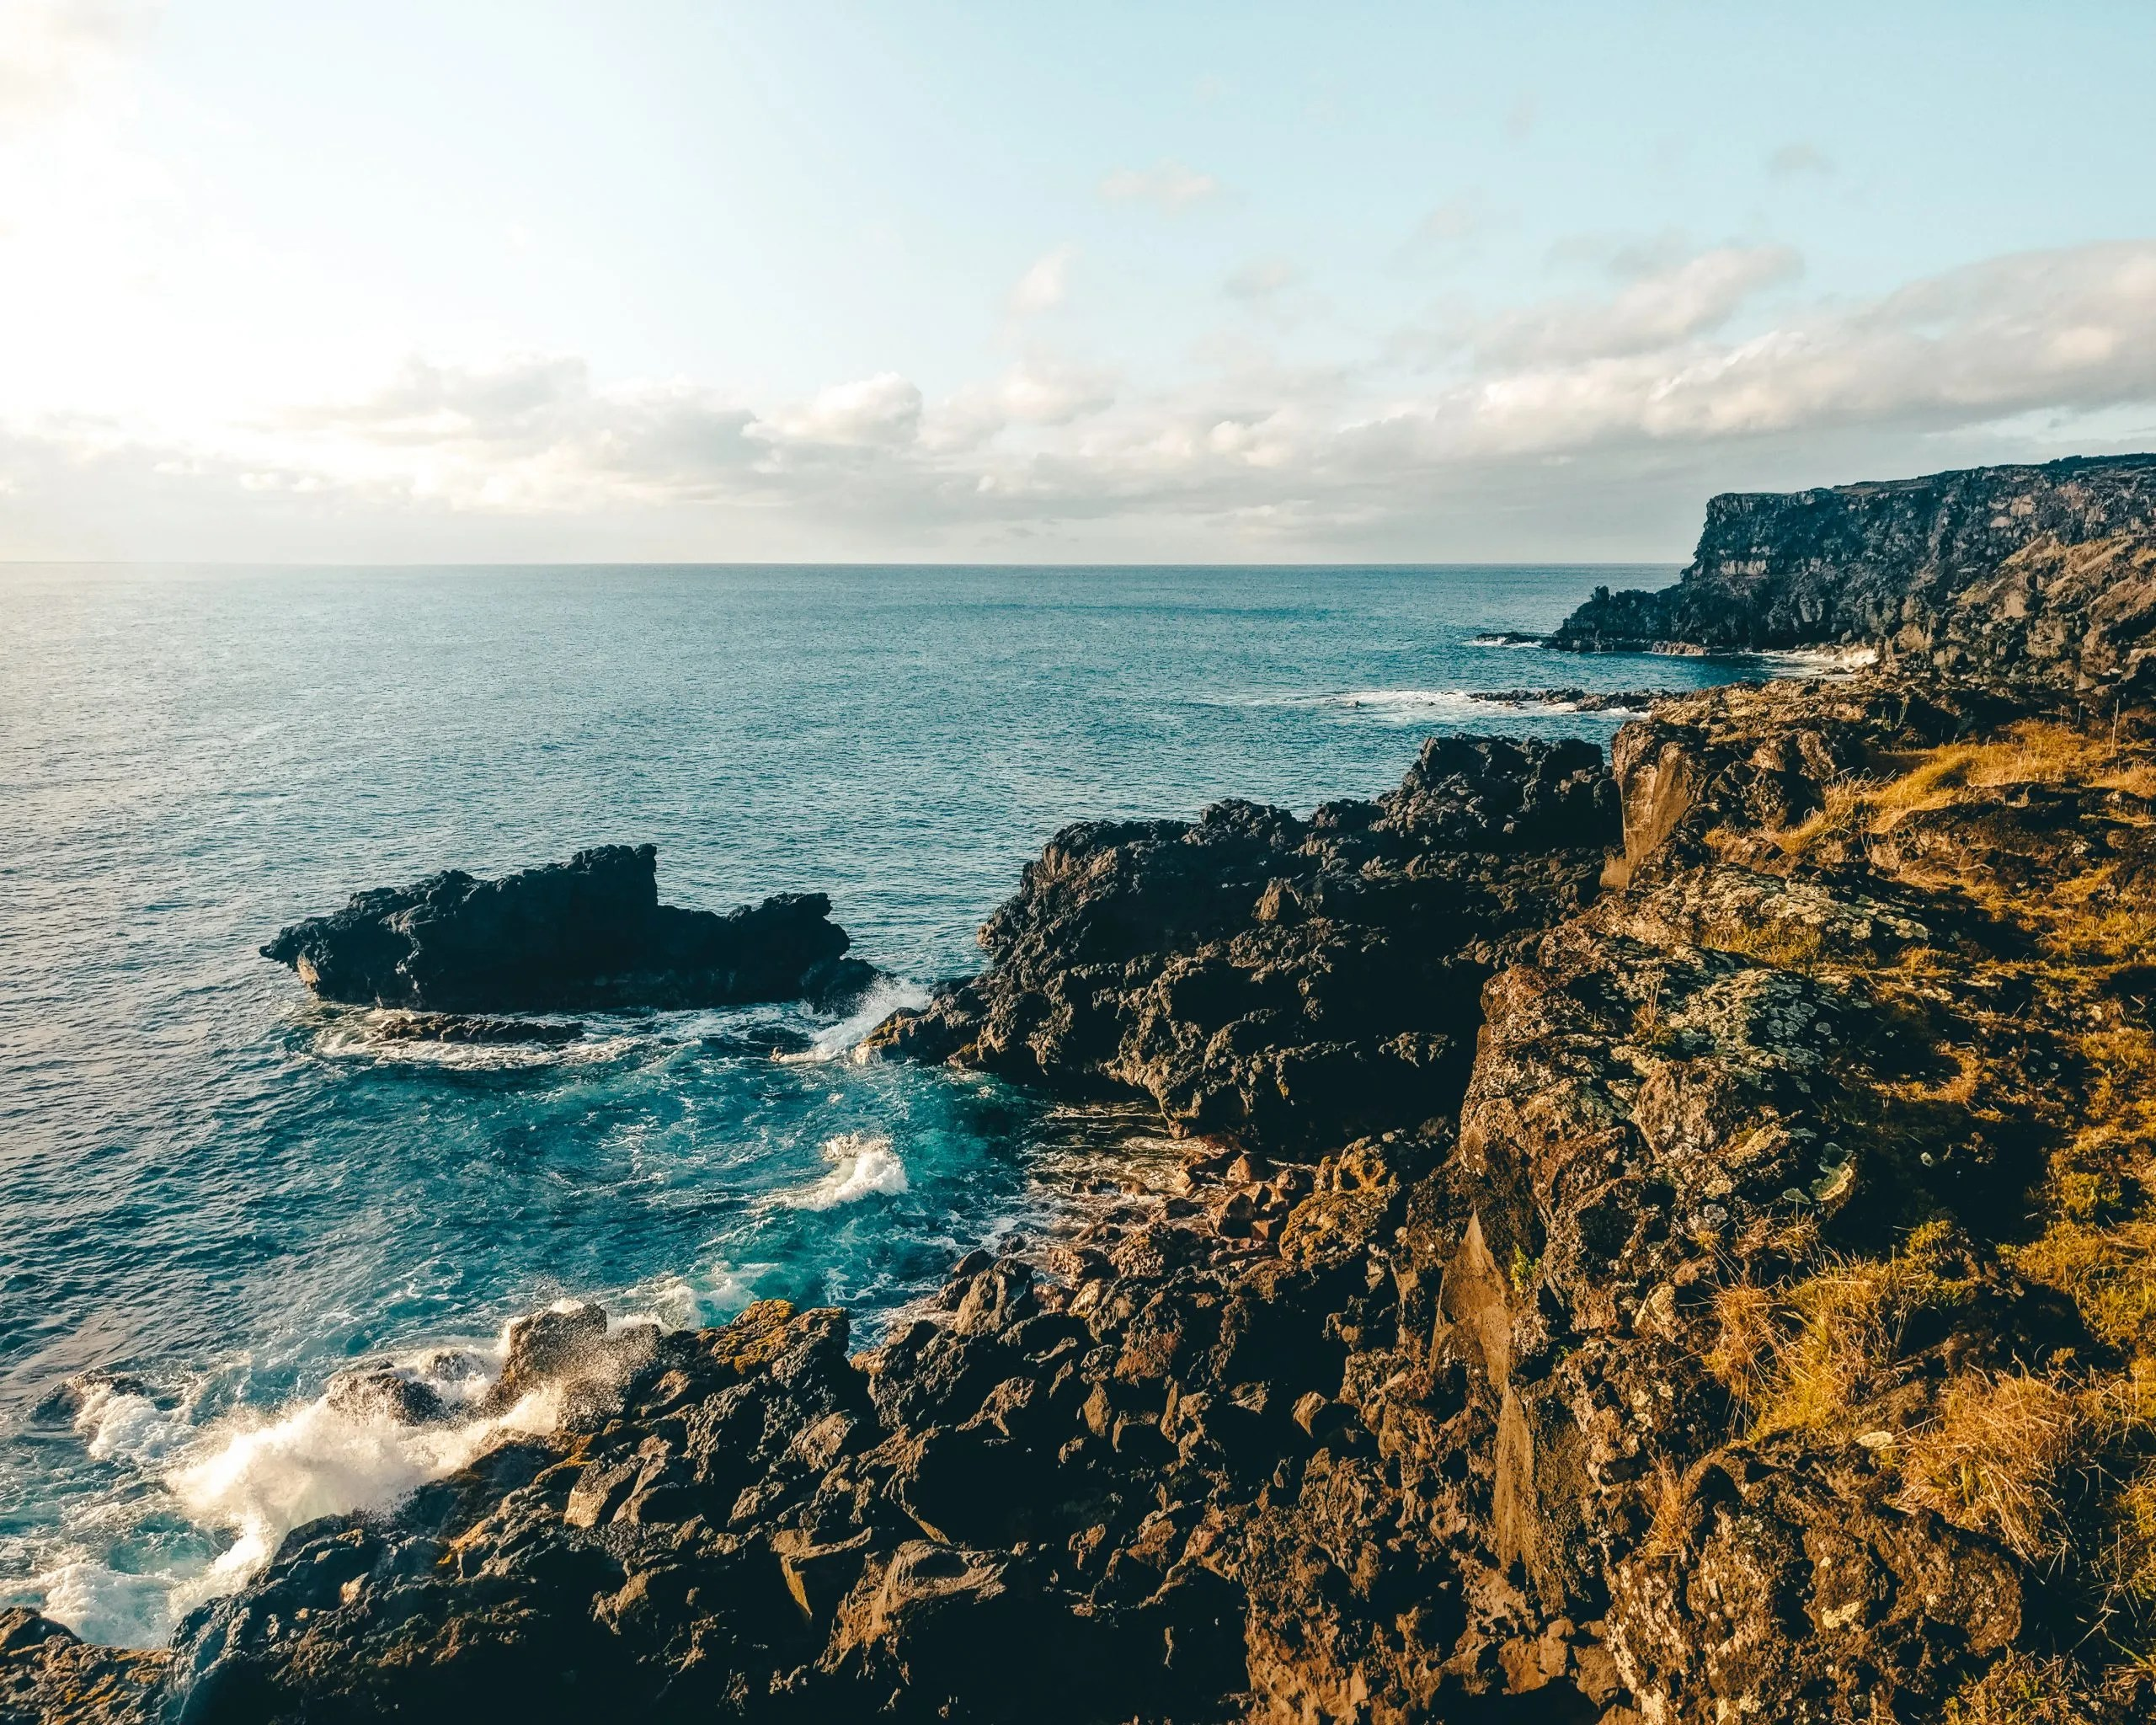 The cliffs of easter island in the middle of the pacific ocean.